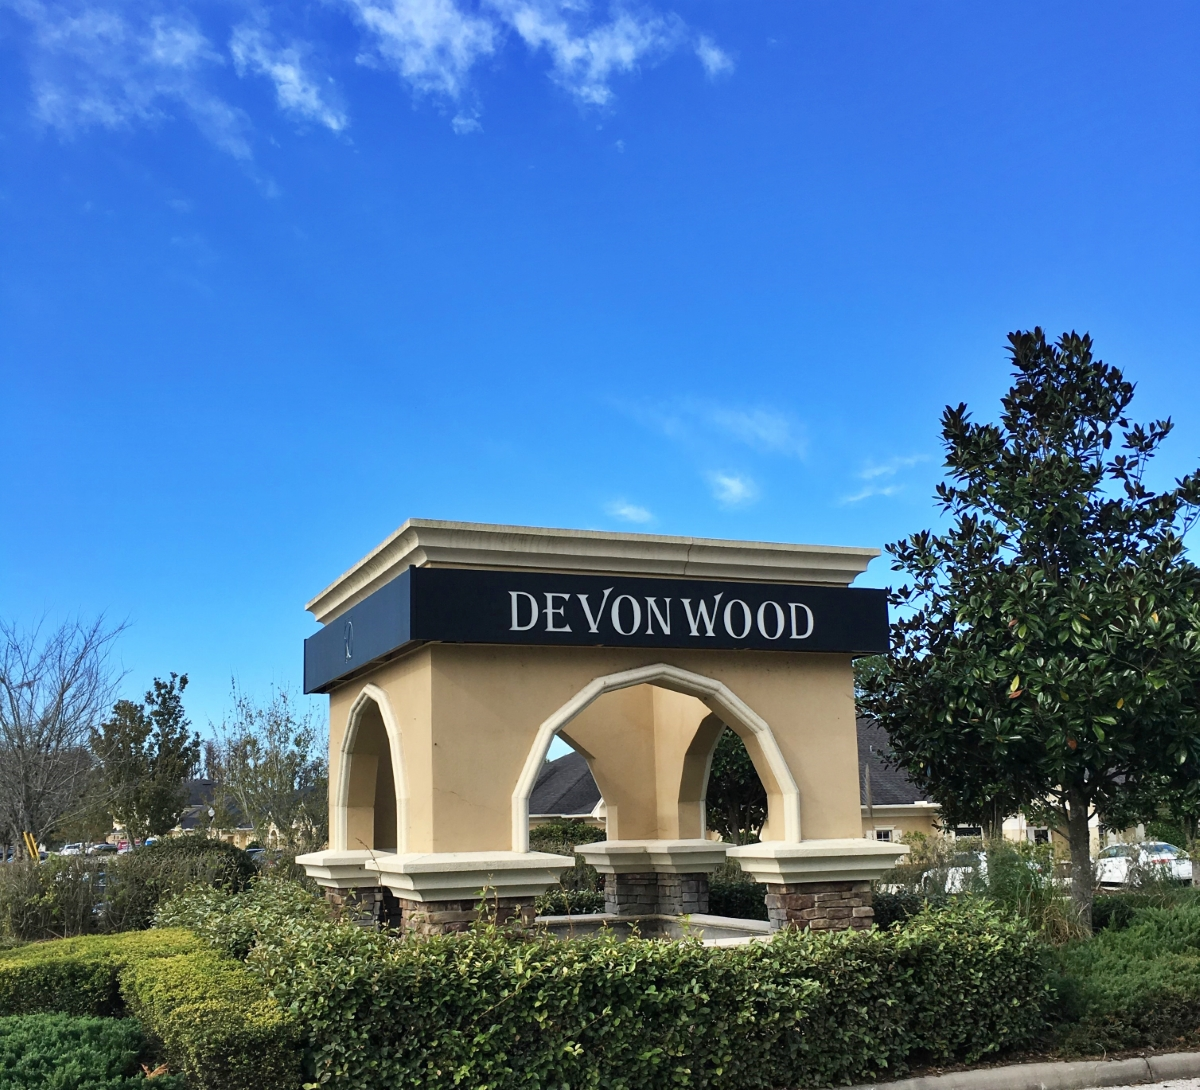 Devonwood_Sign_1.5_edit.jpg